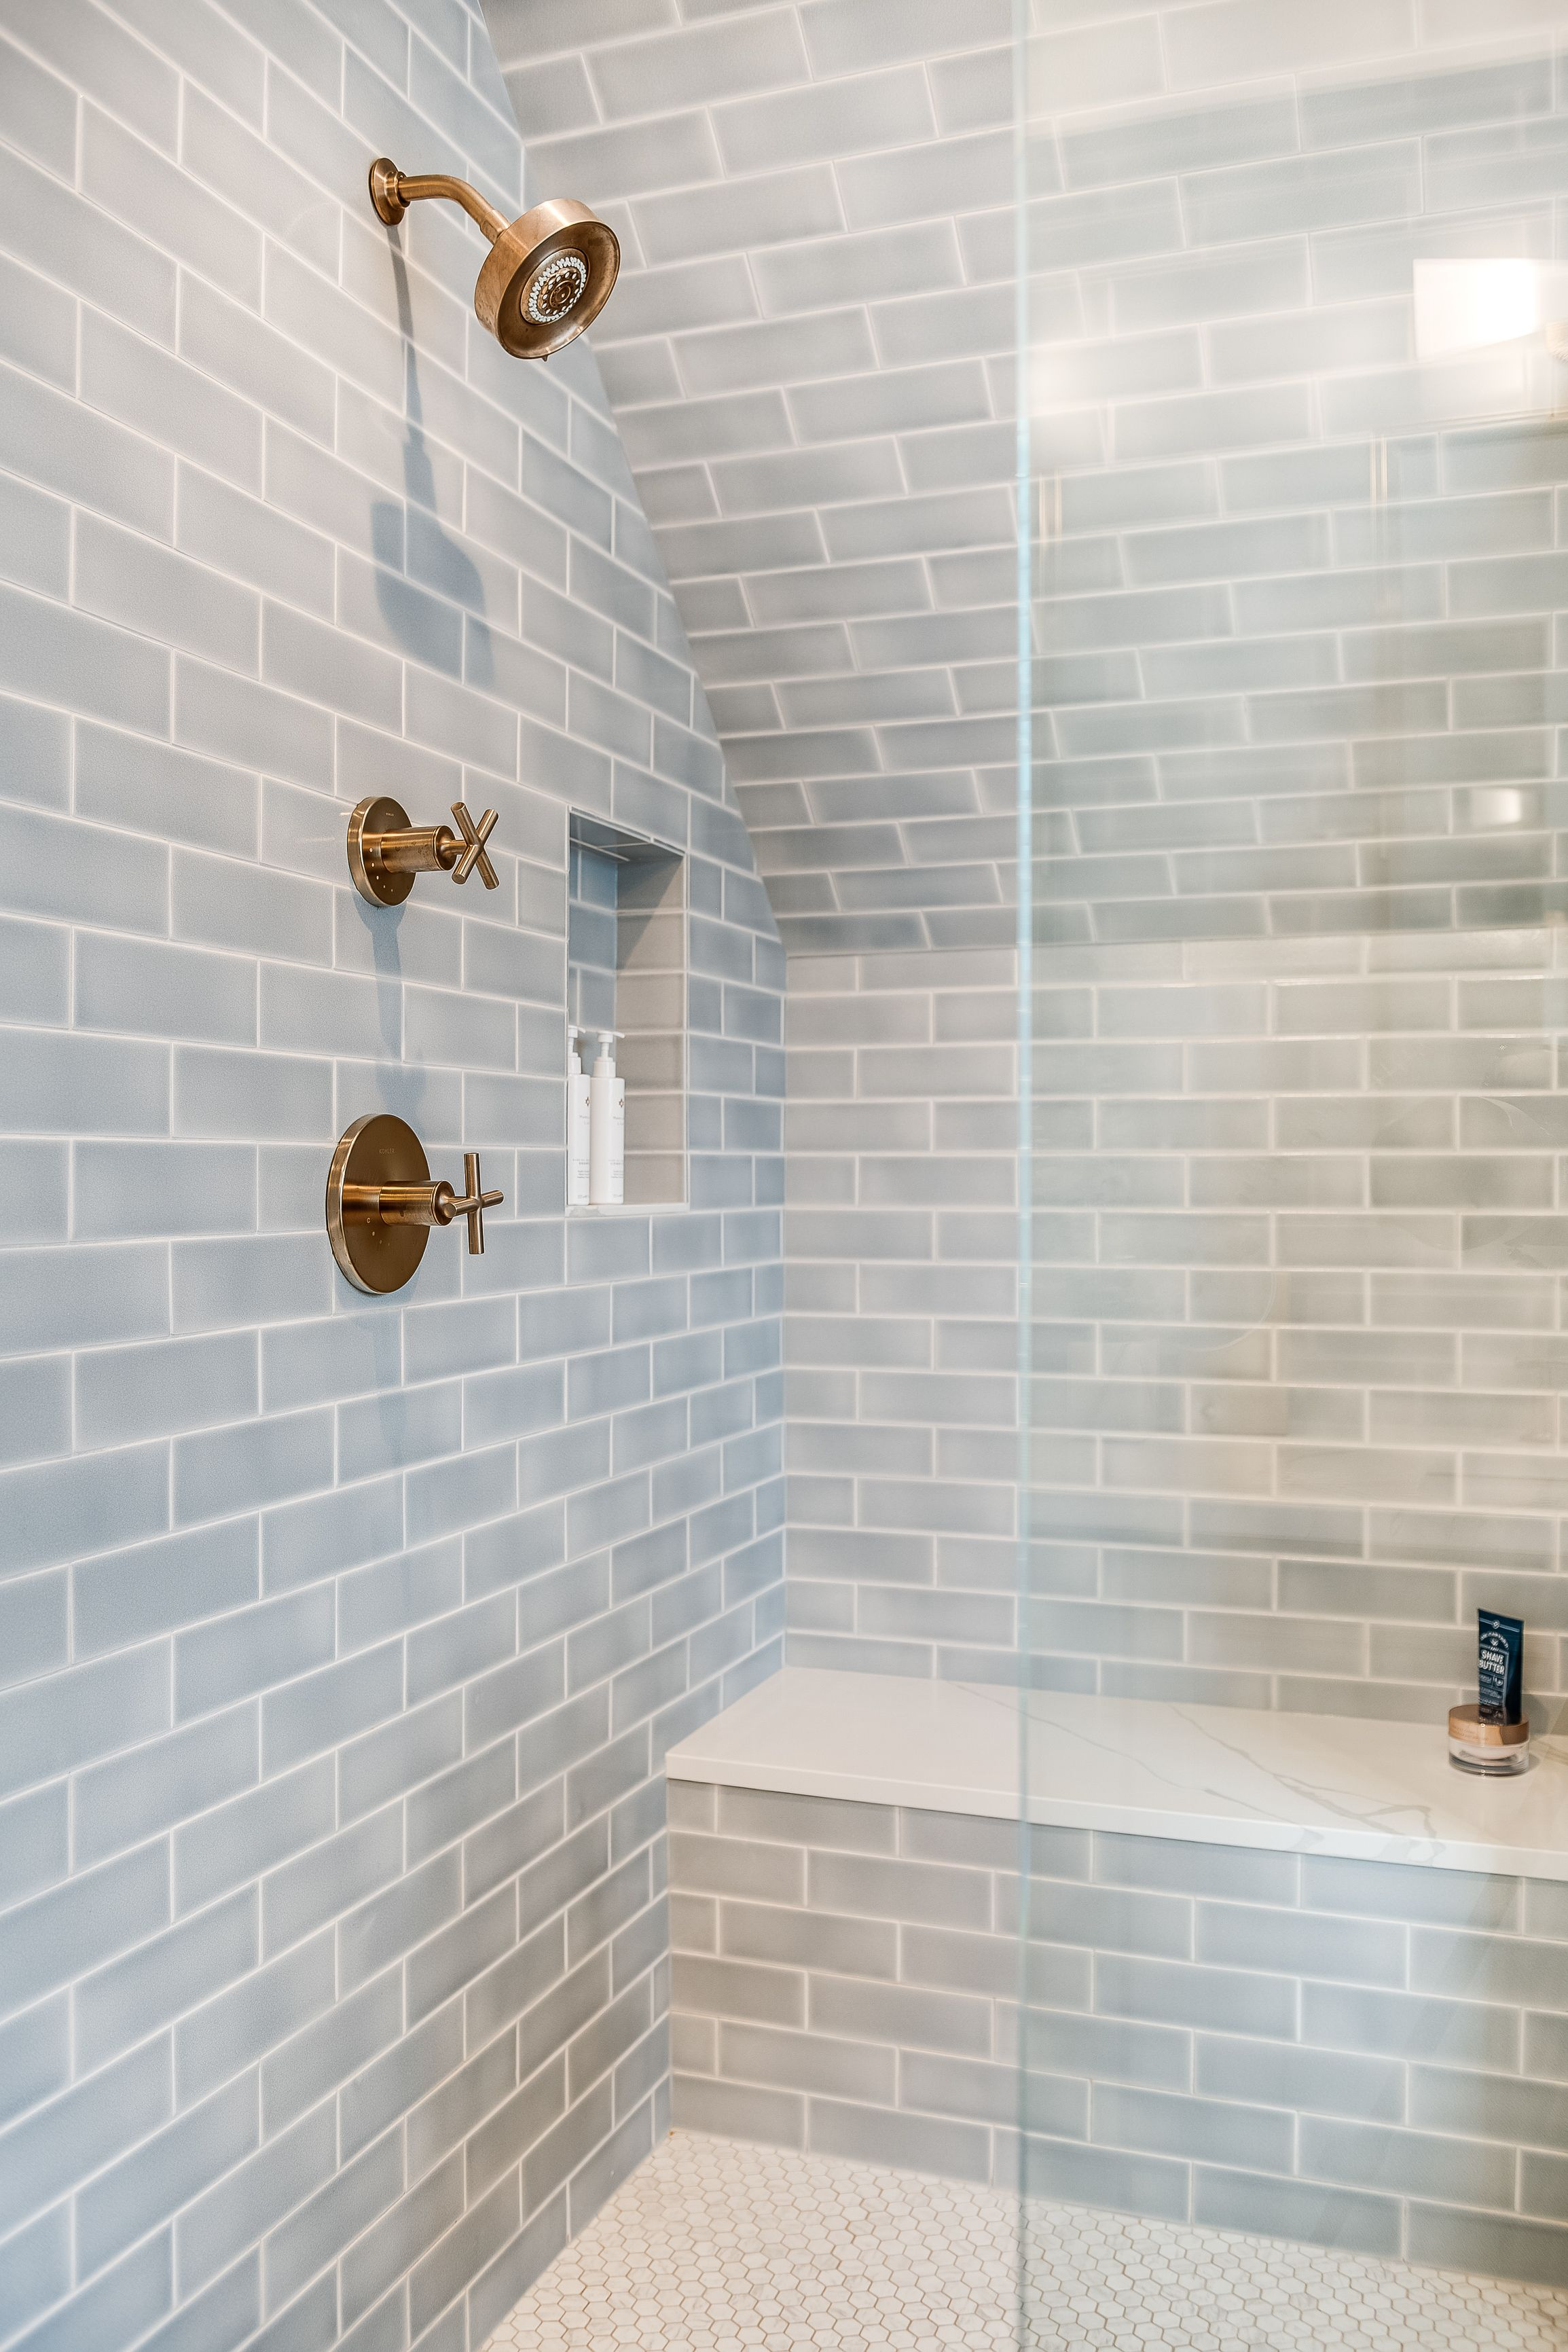 Tile School Bathroom Wall Tile Height How High Should You Go Bathroom Wall Tile Bathroom Floor Tiles Bathrooms Remodel